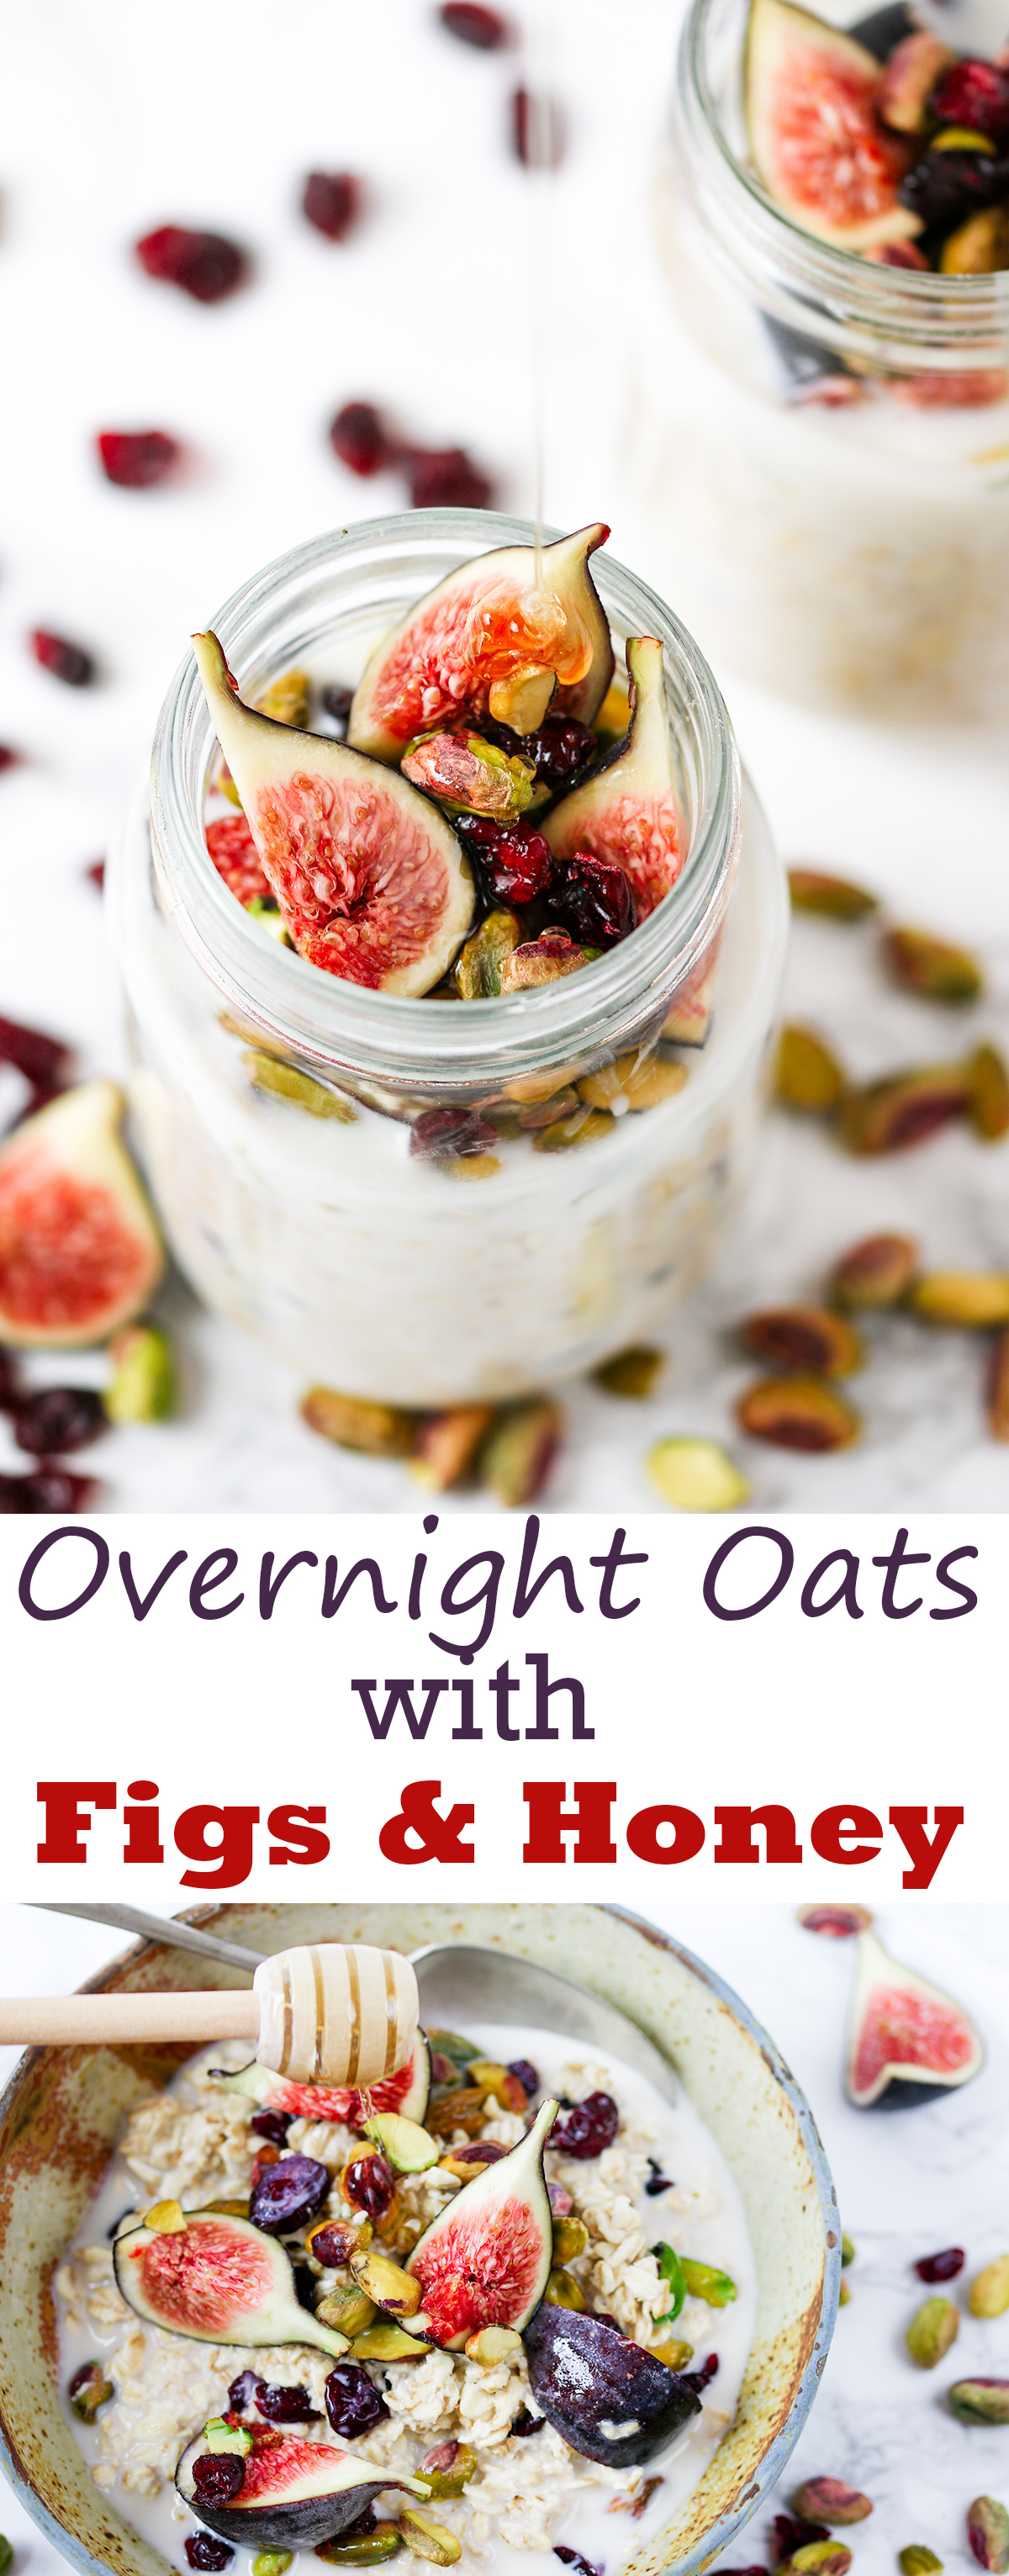 Fruit and Nut Overnight Oats - A hearty-yet-healthy breakfast you can make ahead!